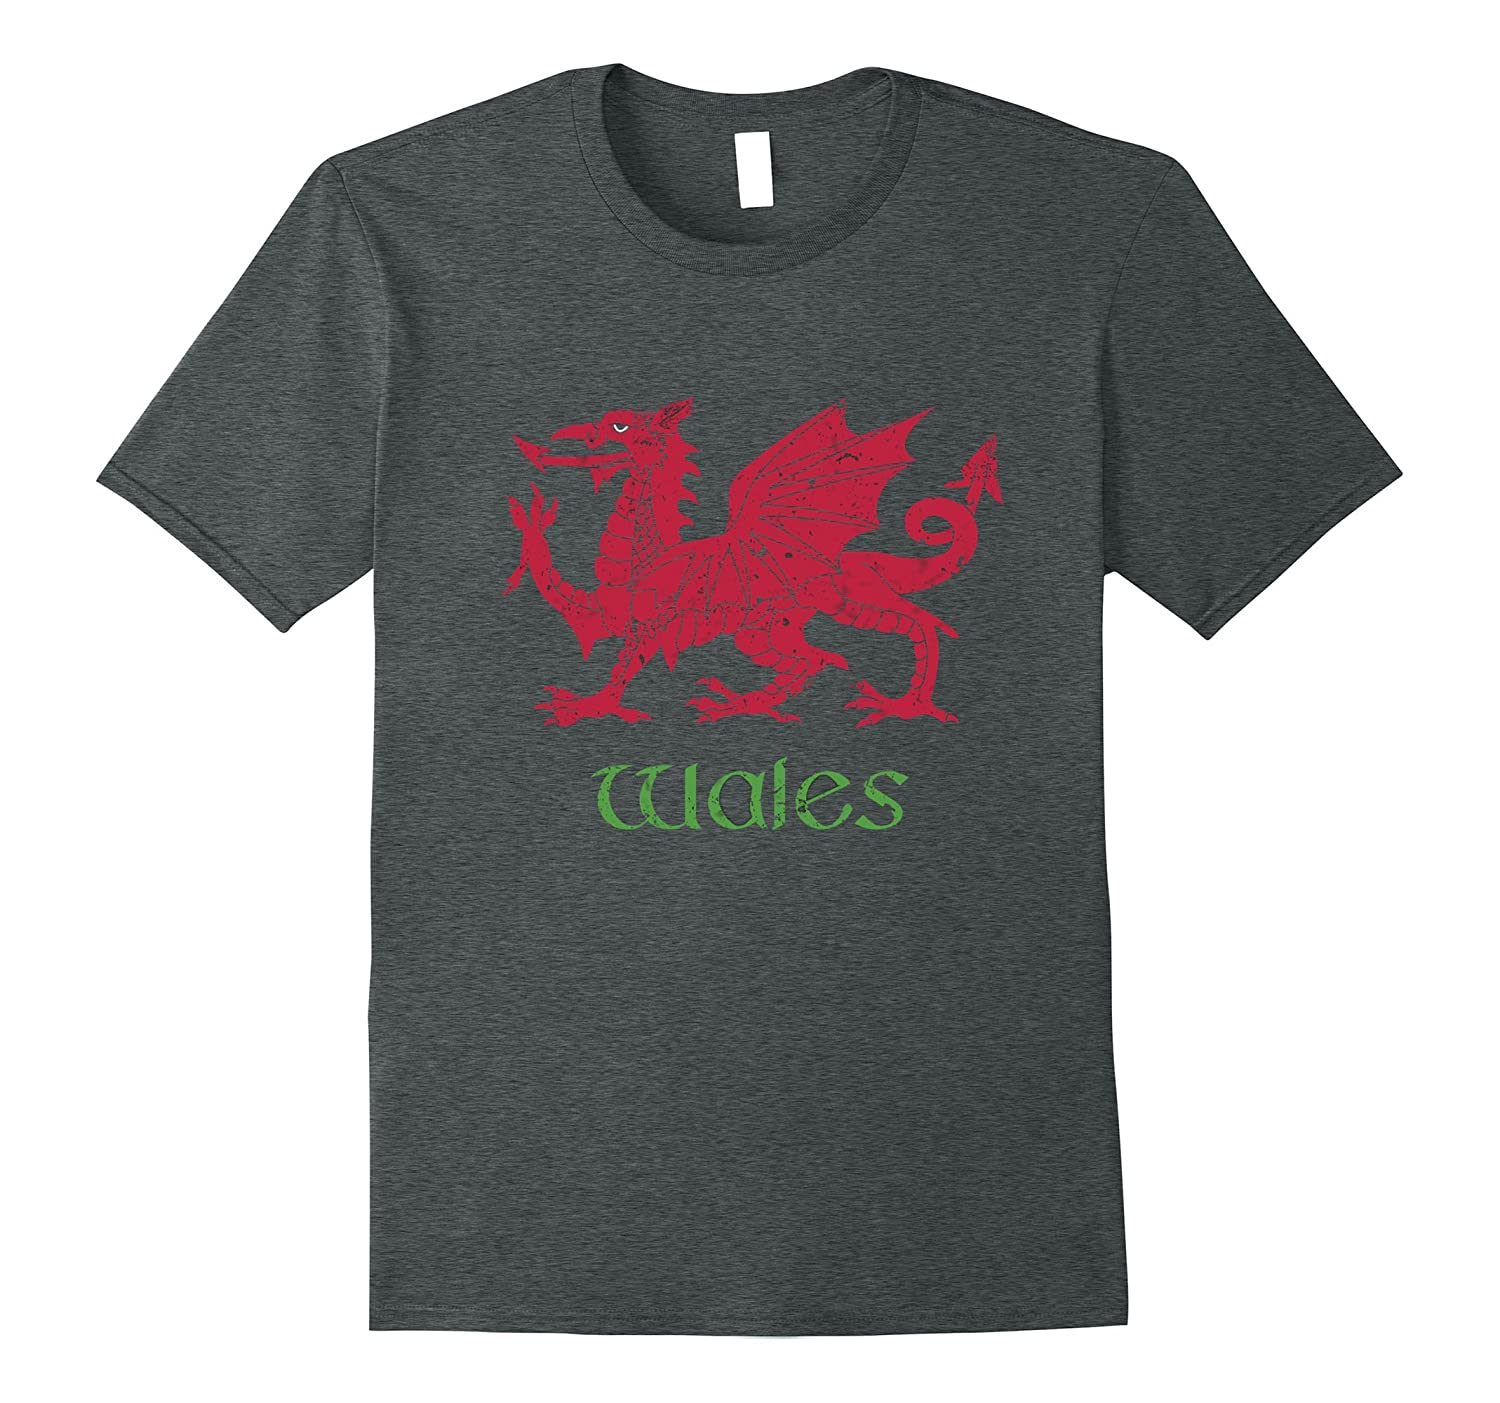 Wales Dragon T-Shirt Vintage Welsh Flag Tee